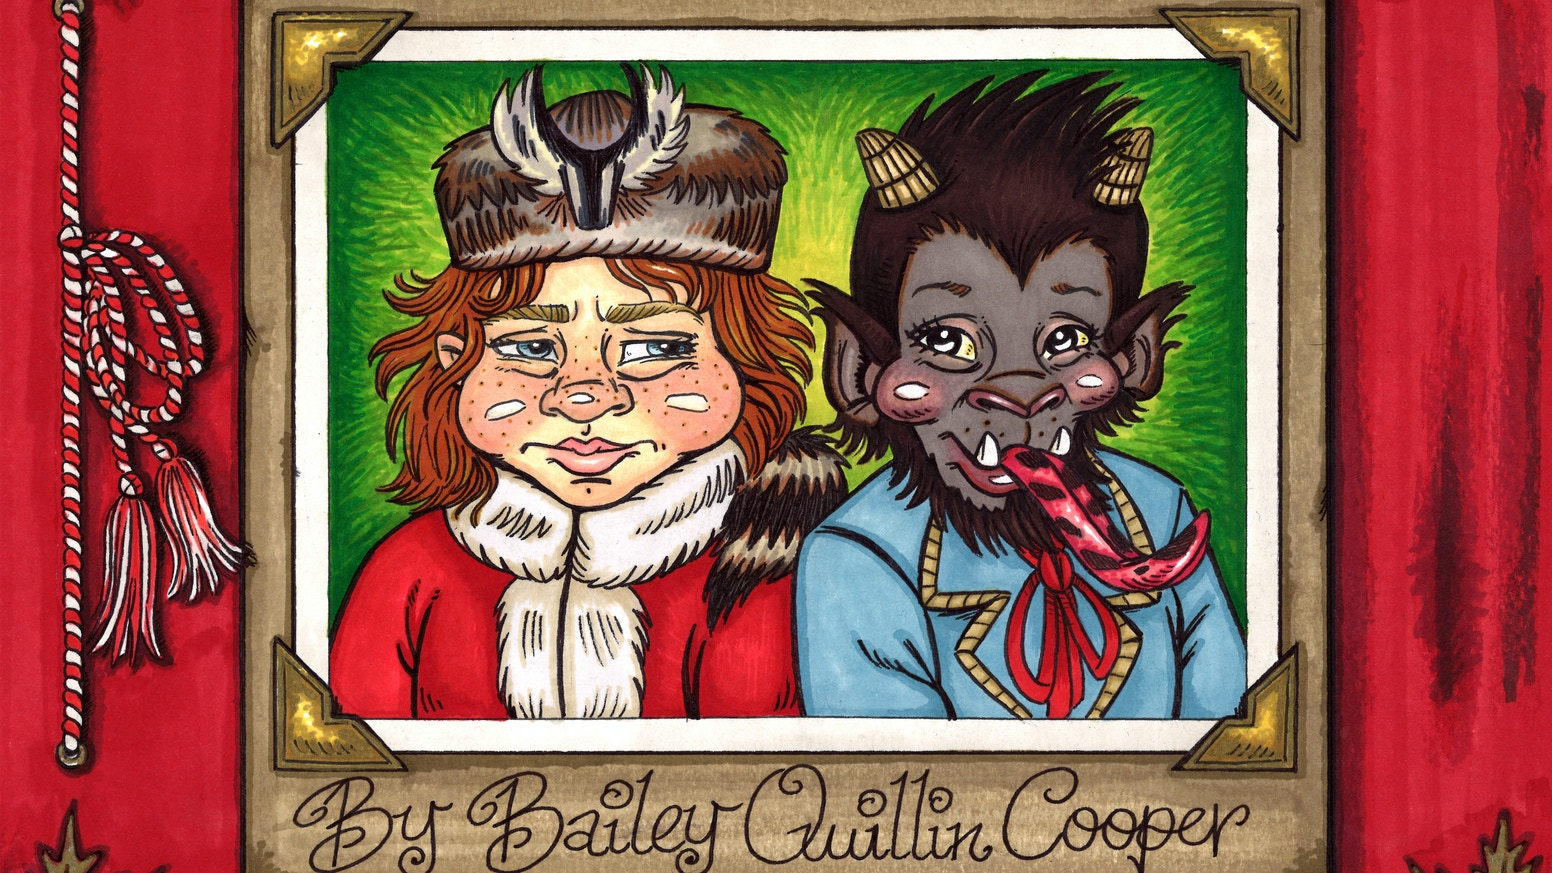 This is the only book ever made about Kris Kringle and Krampus Kringle growing up as brothers; written and illustrated by yours truly!